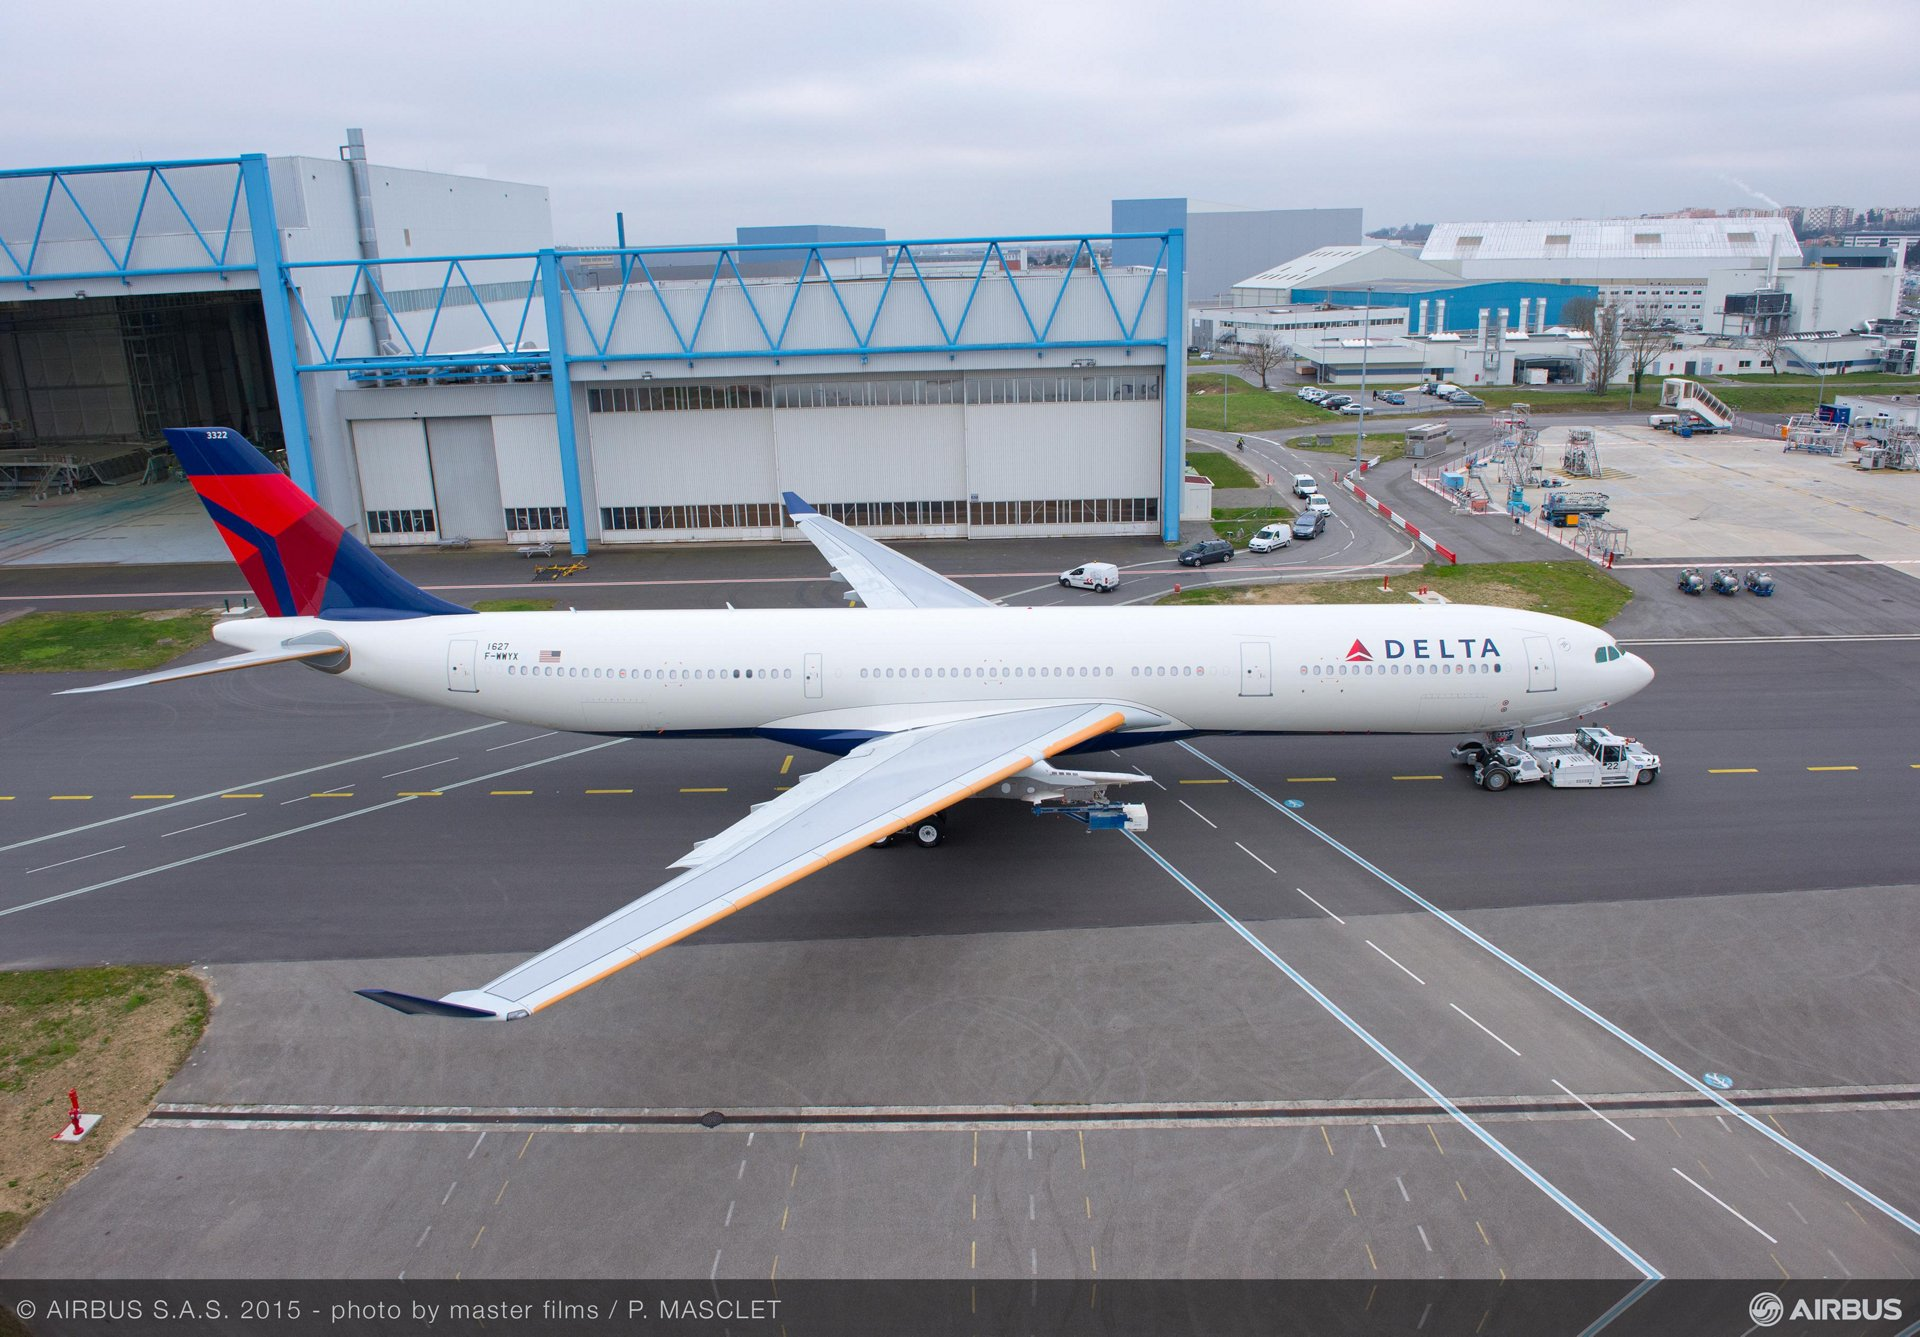 Rollout of Delta Air Lines' 242 tonne A330 variant_1